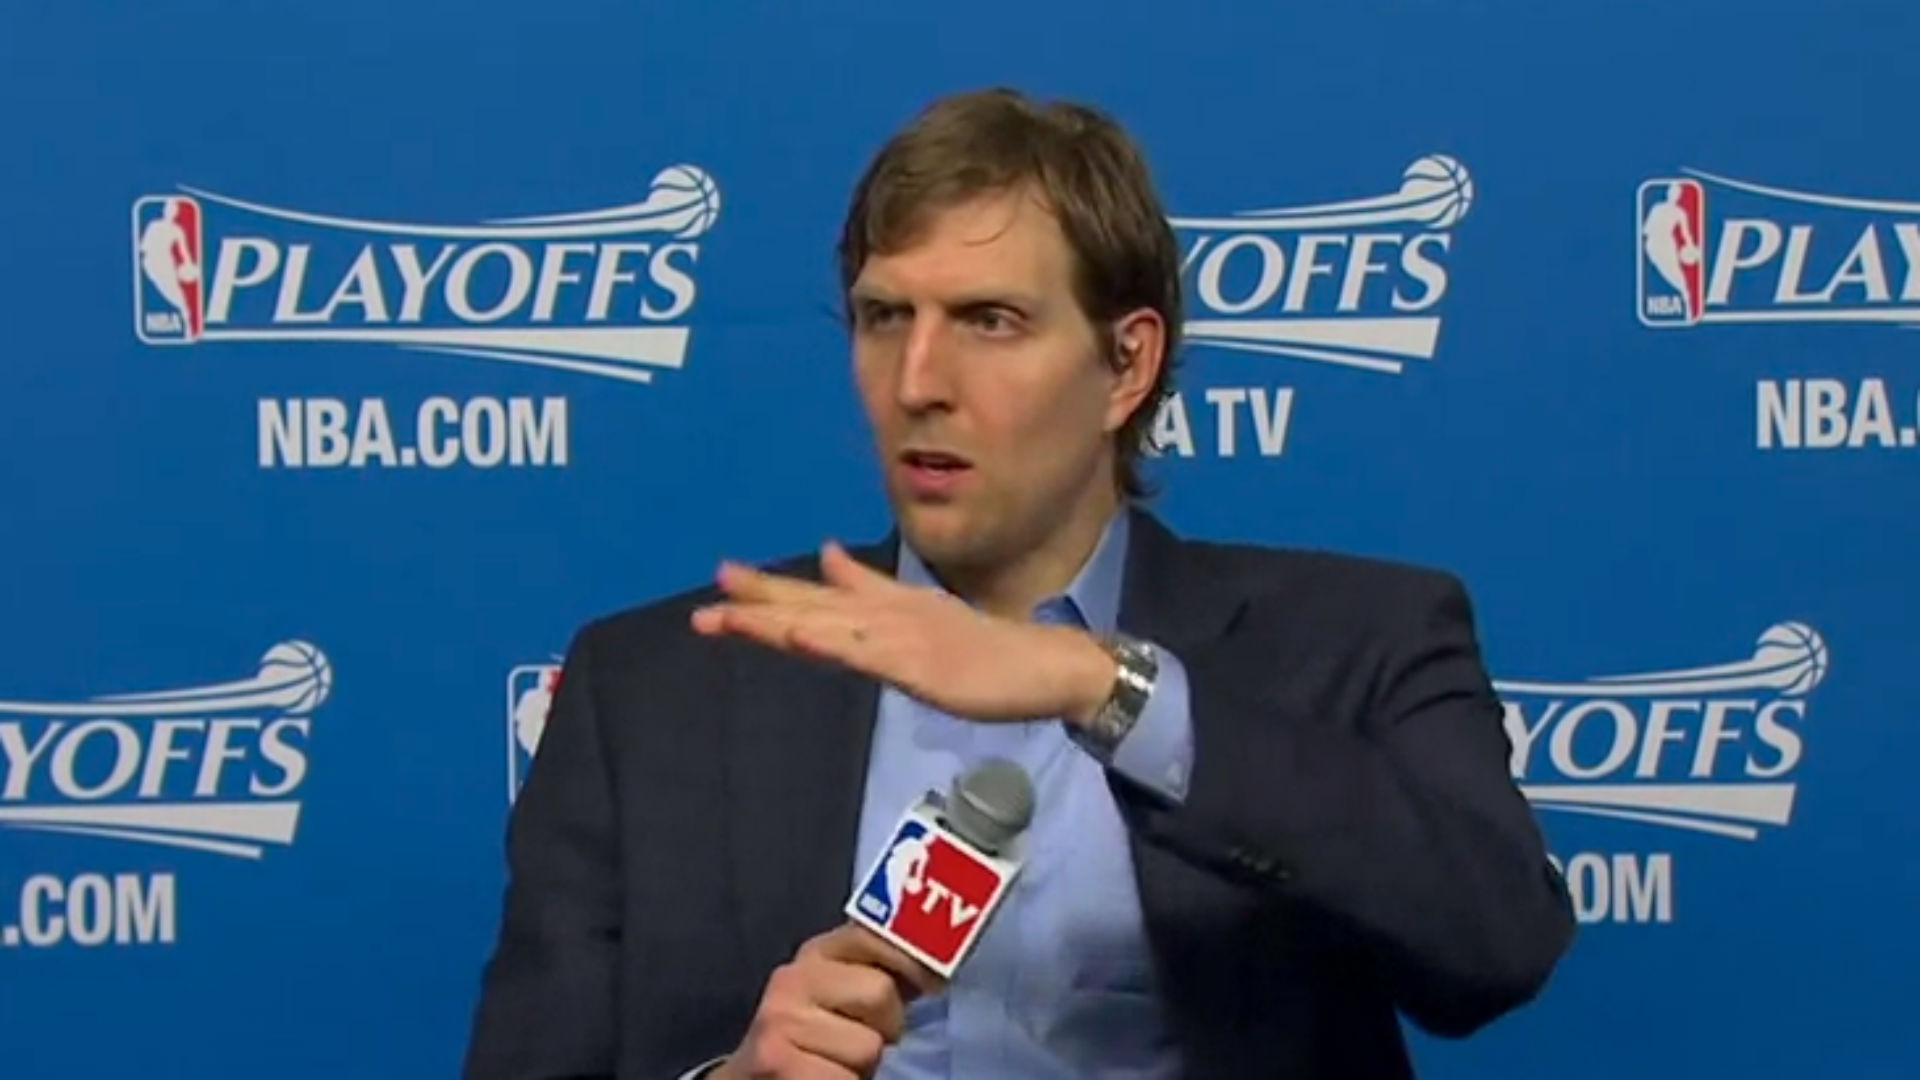 Dirk Nowitzki gets violent with a microphone